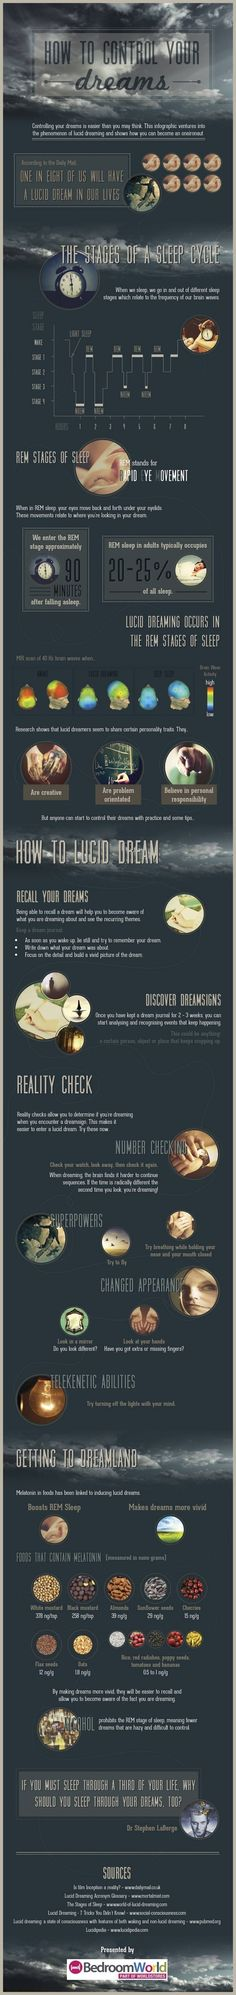 to Control Your Dreams I am starting a dream journal tonight. Infographic- How to control your dreams. Lucid DreamingI am starting a dream journal tonight. Infographic- How to control your dreams. Lucid Dreaming, Dreaming Of You, Control Your Dreams, Graveyard Shift, Halloween Graveyard, Halloween Night, Dream Meanings, Dream Journal, Mind Journal